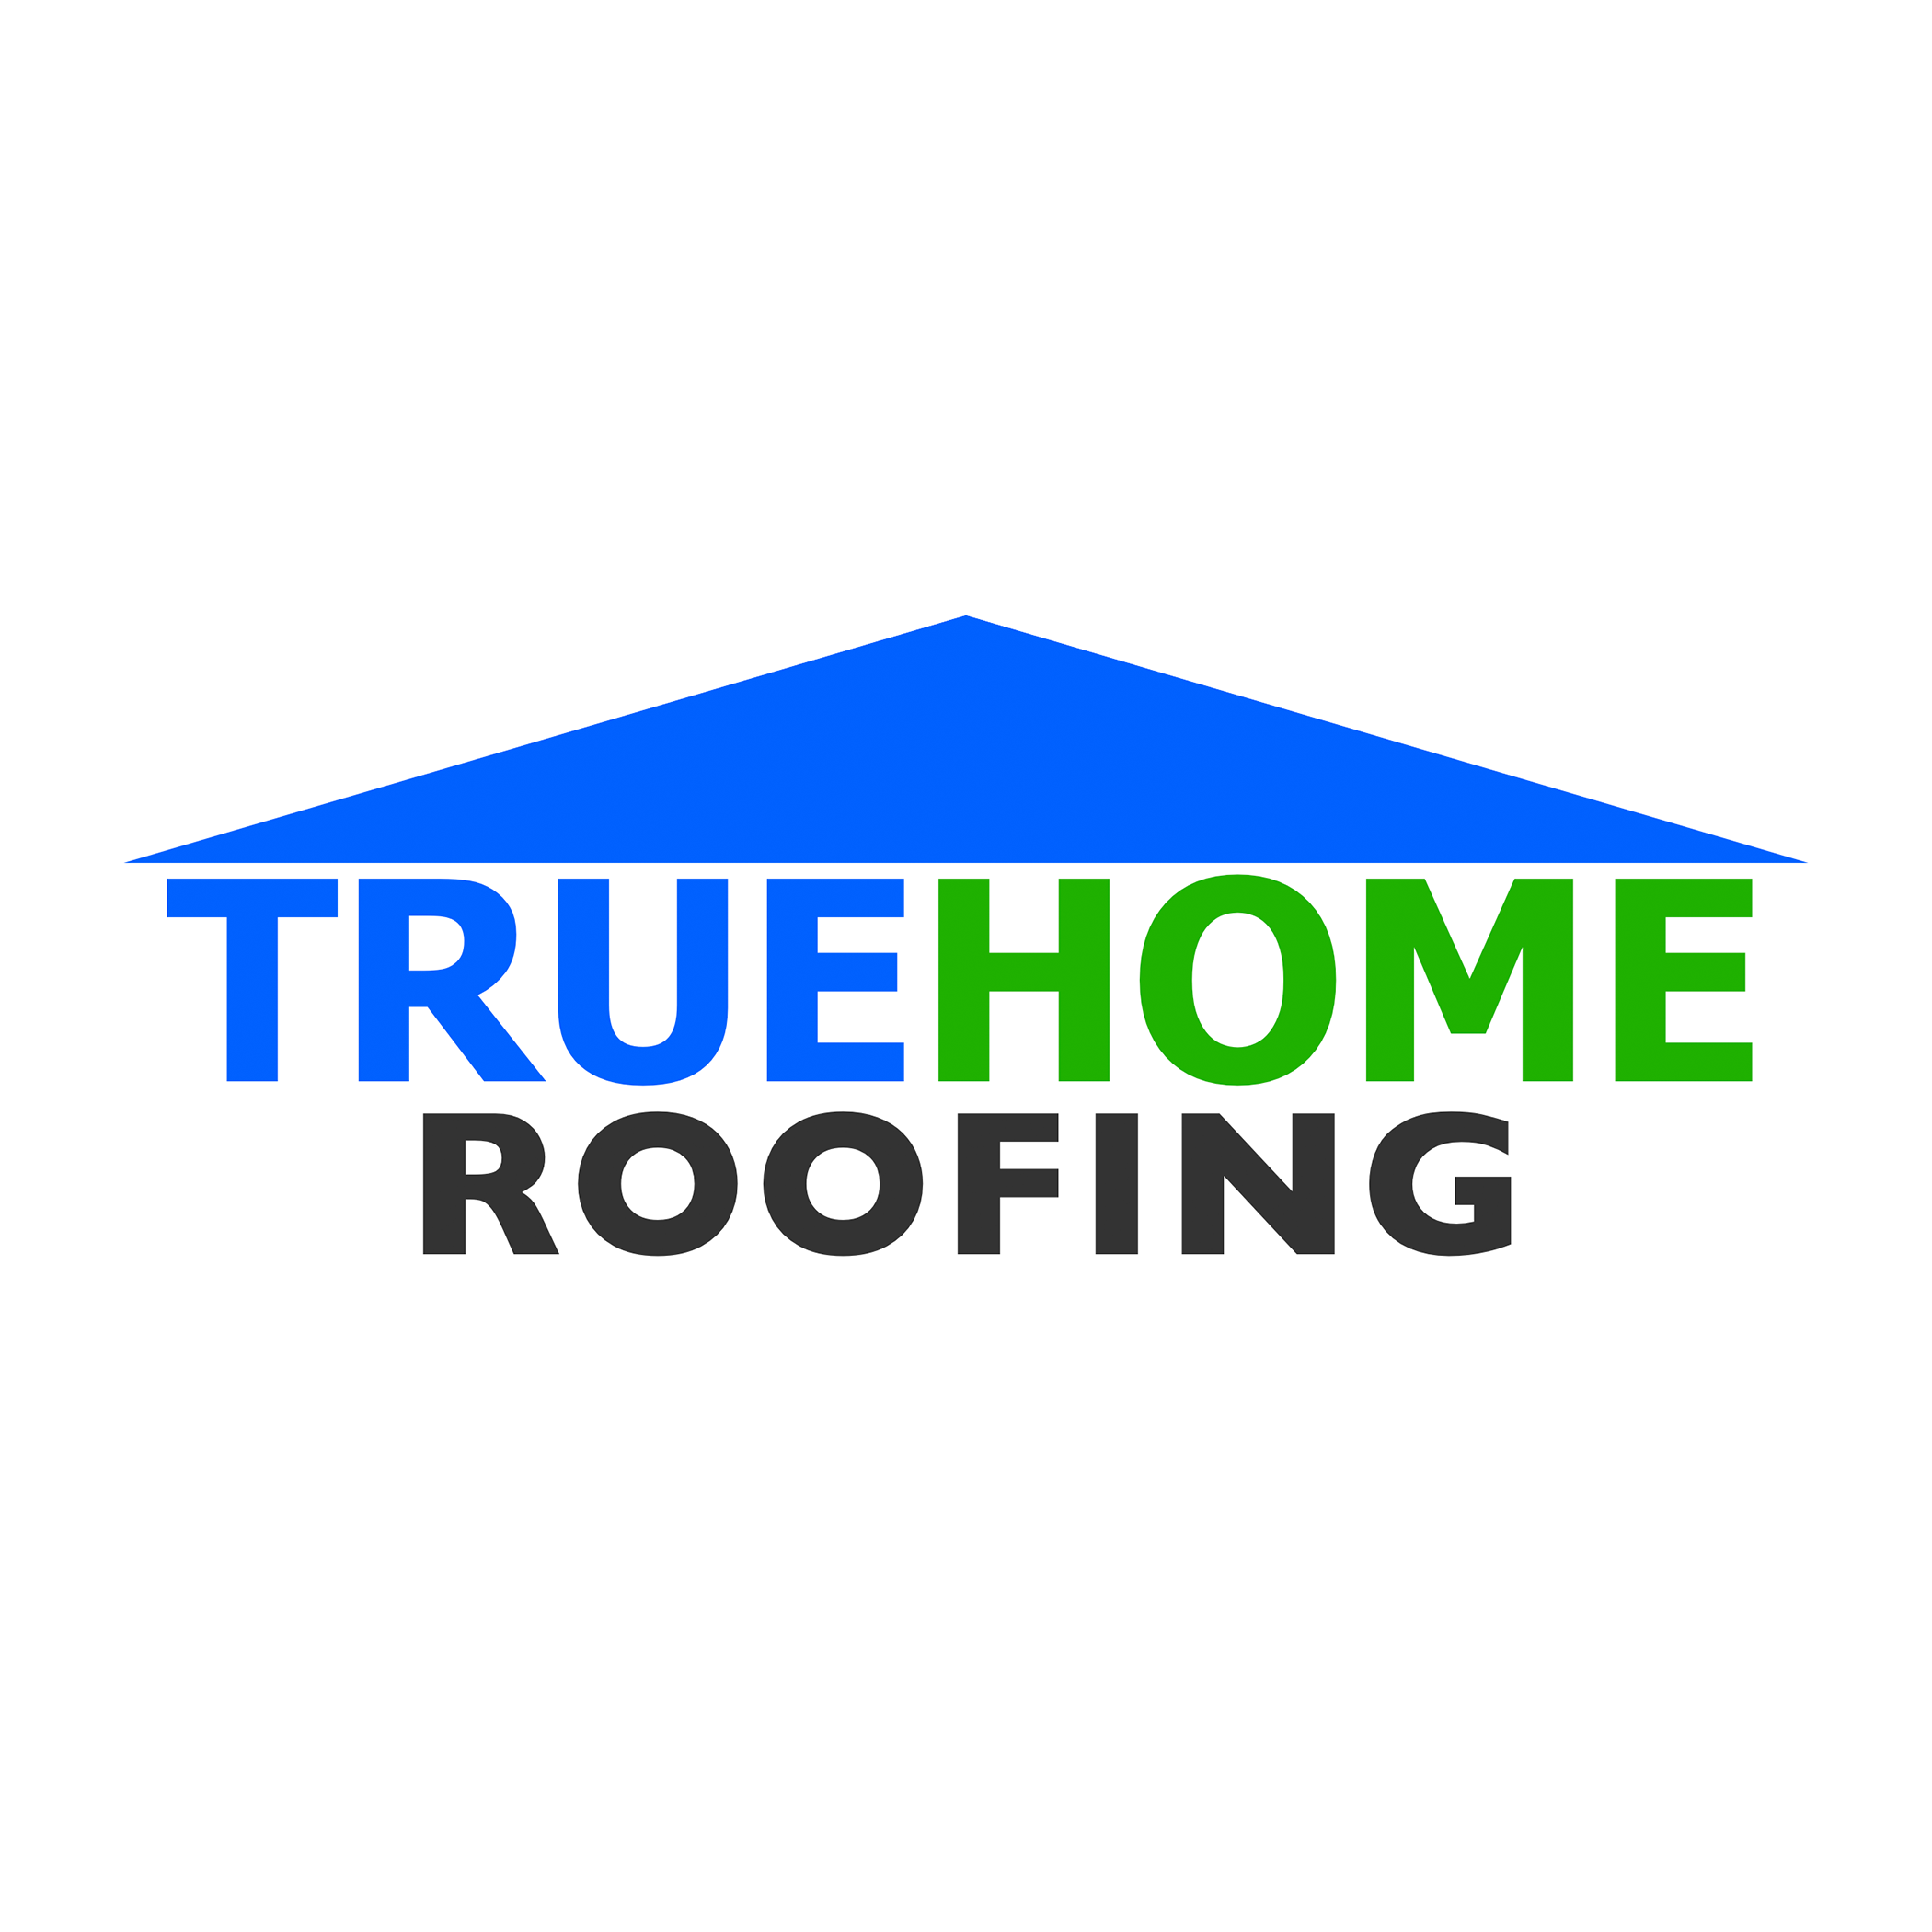 TRUEHOME Roofing Siding Windows logo